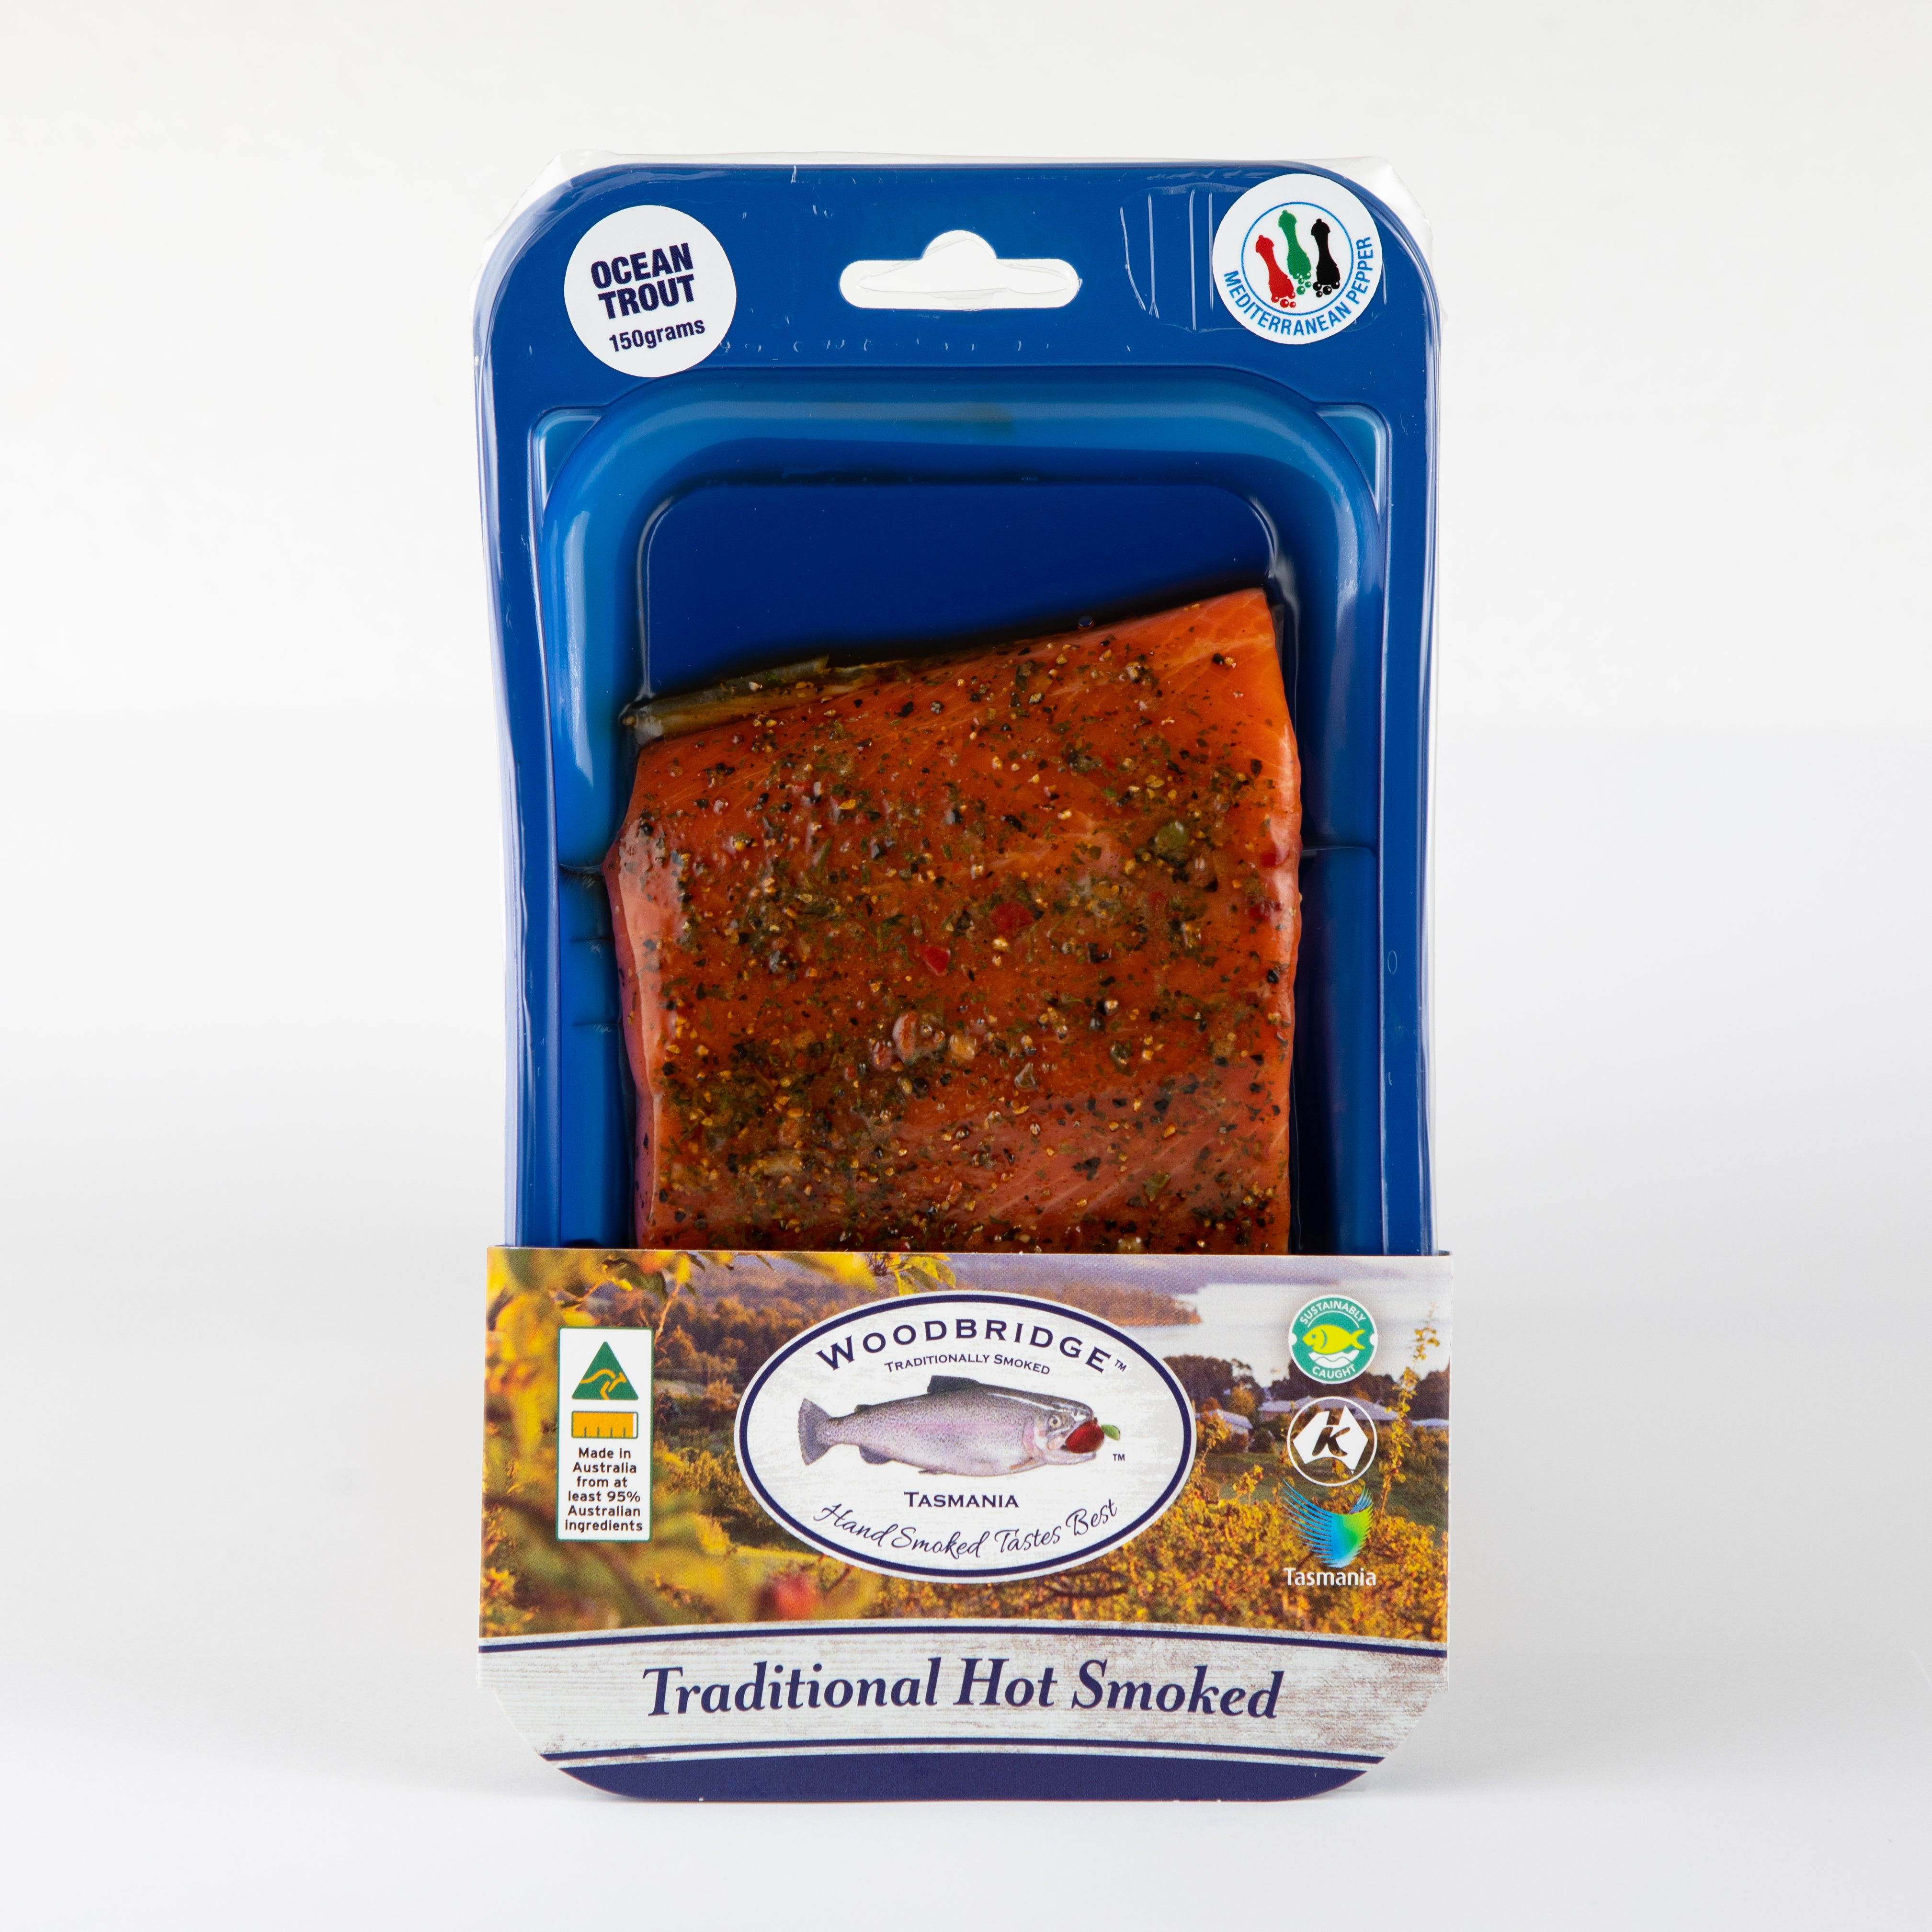 Hot Smoked Ocean Trout Mediterranean Pepper